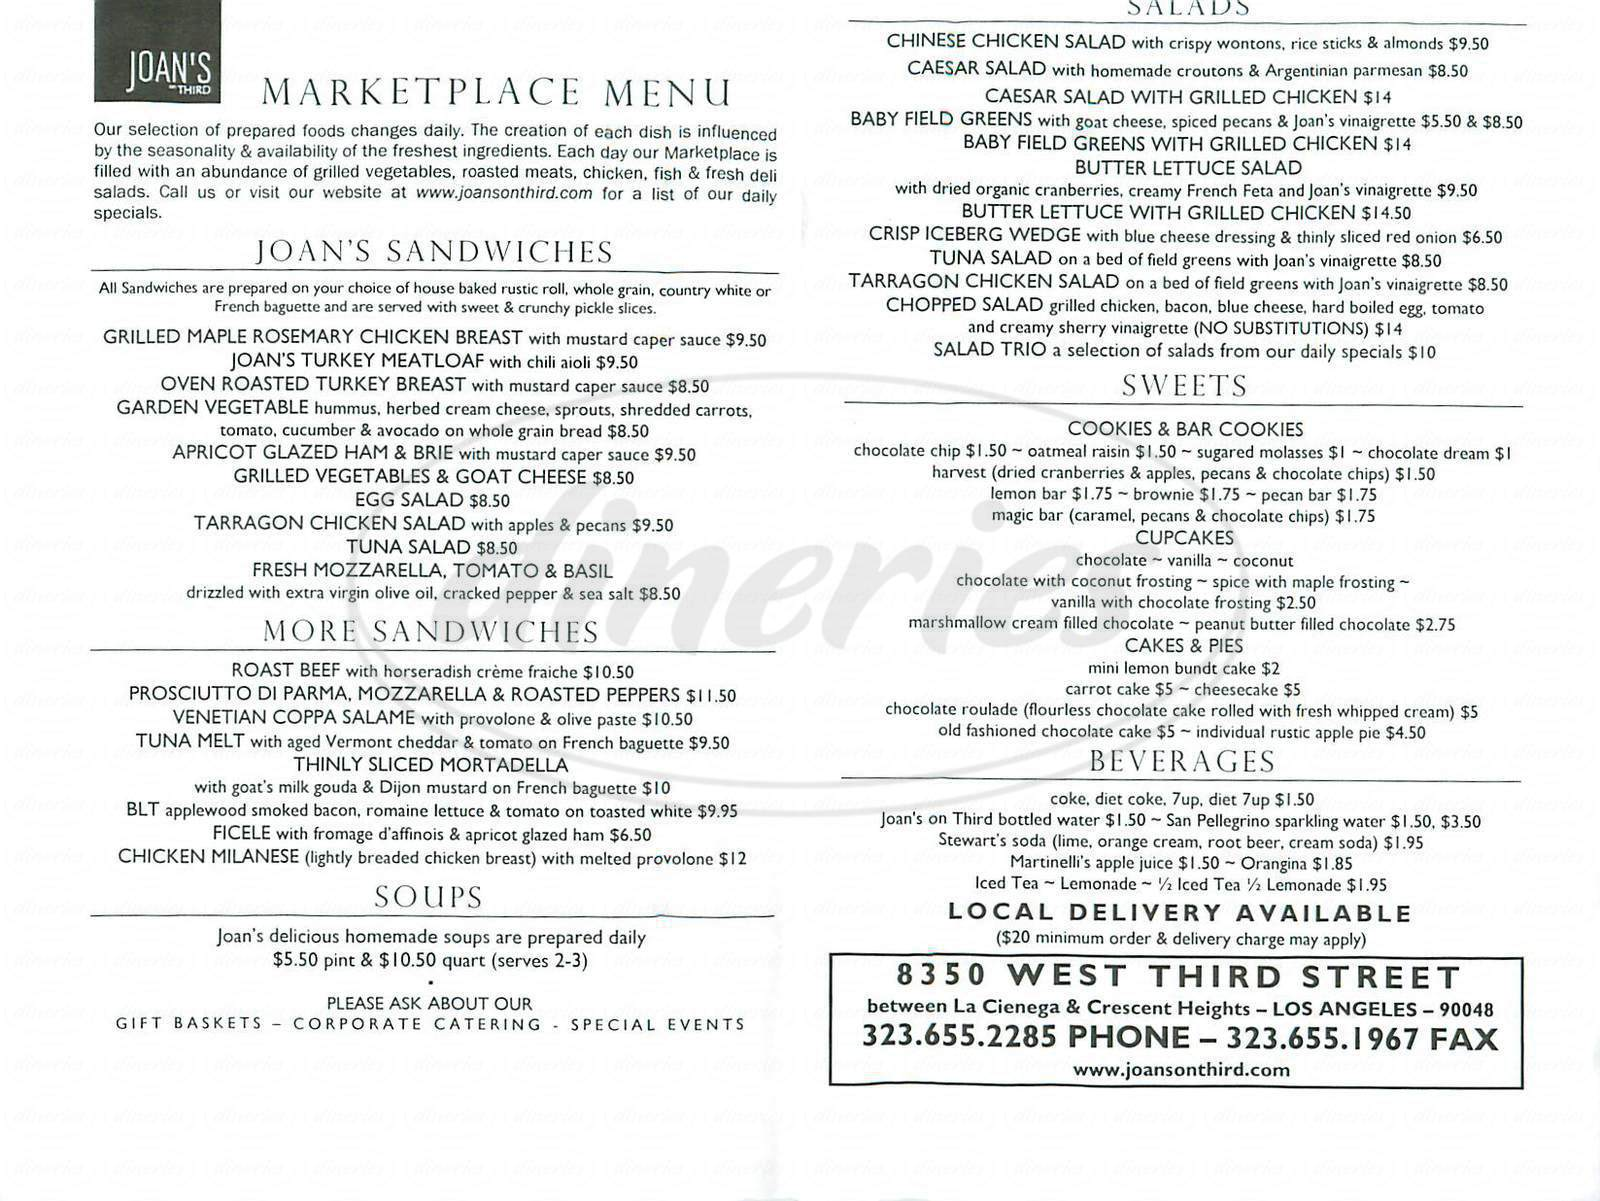 menu for Joan's on Third